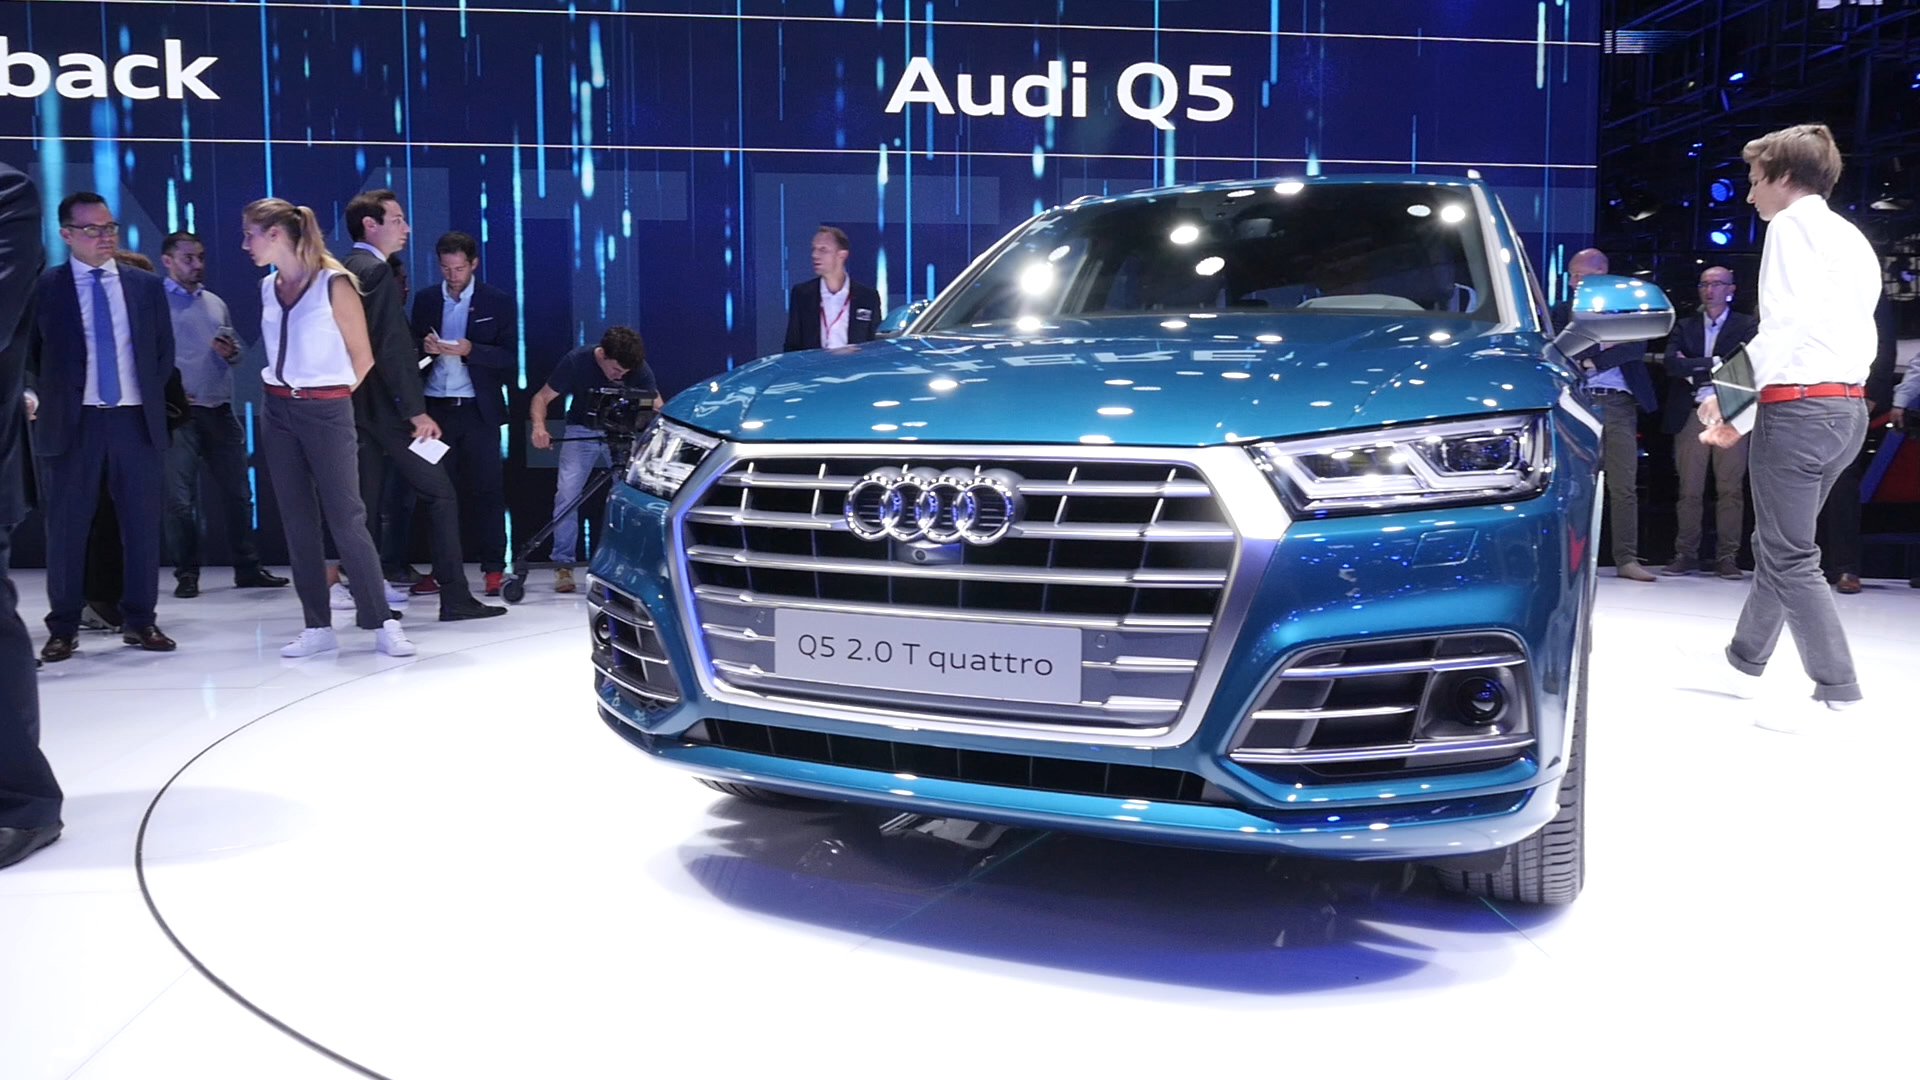 Video: 2018 Audi Q5 vastly improves looks, tech offerings